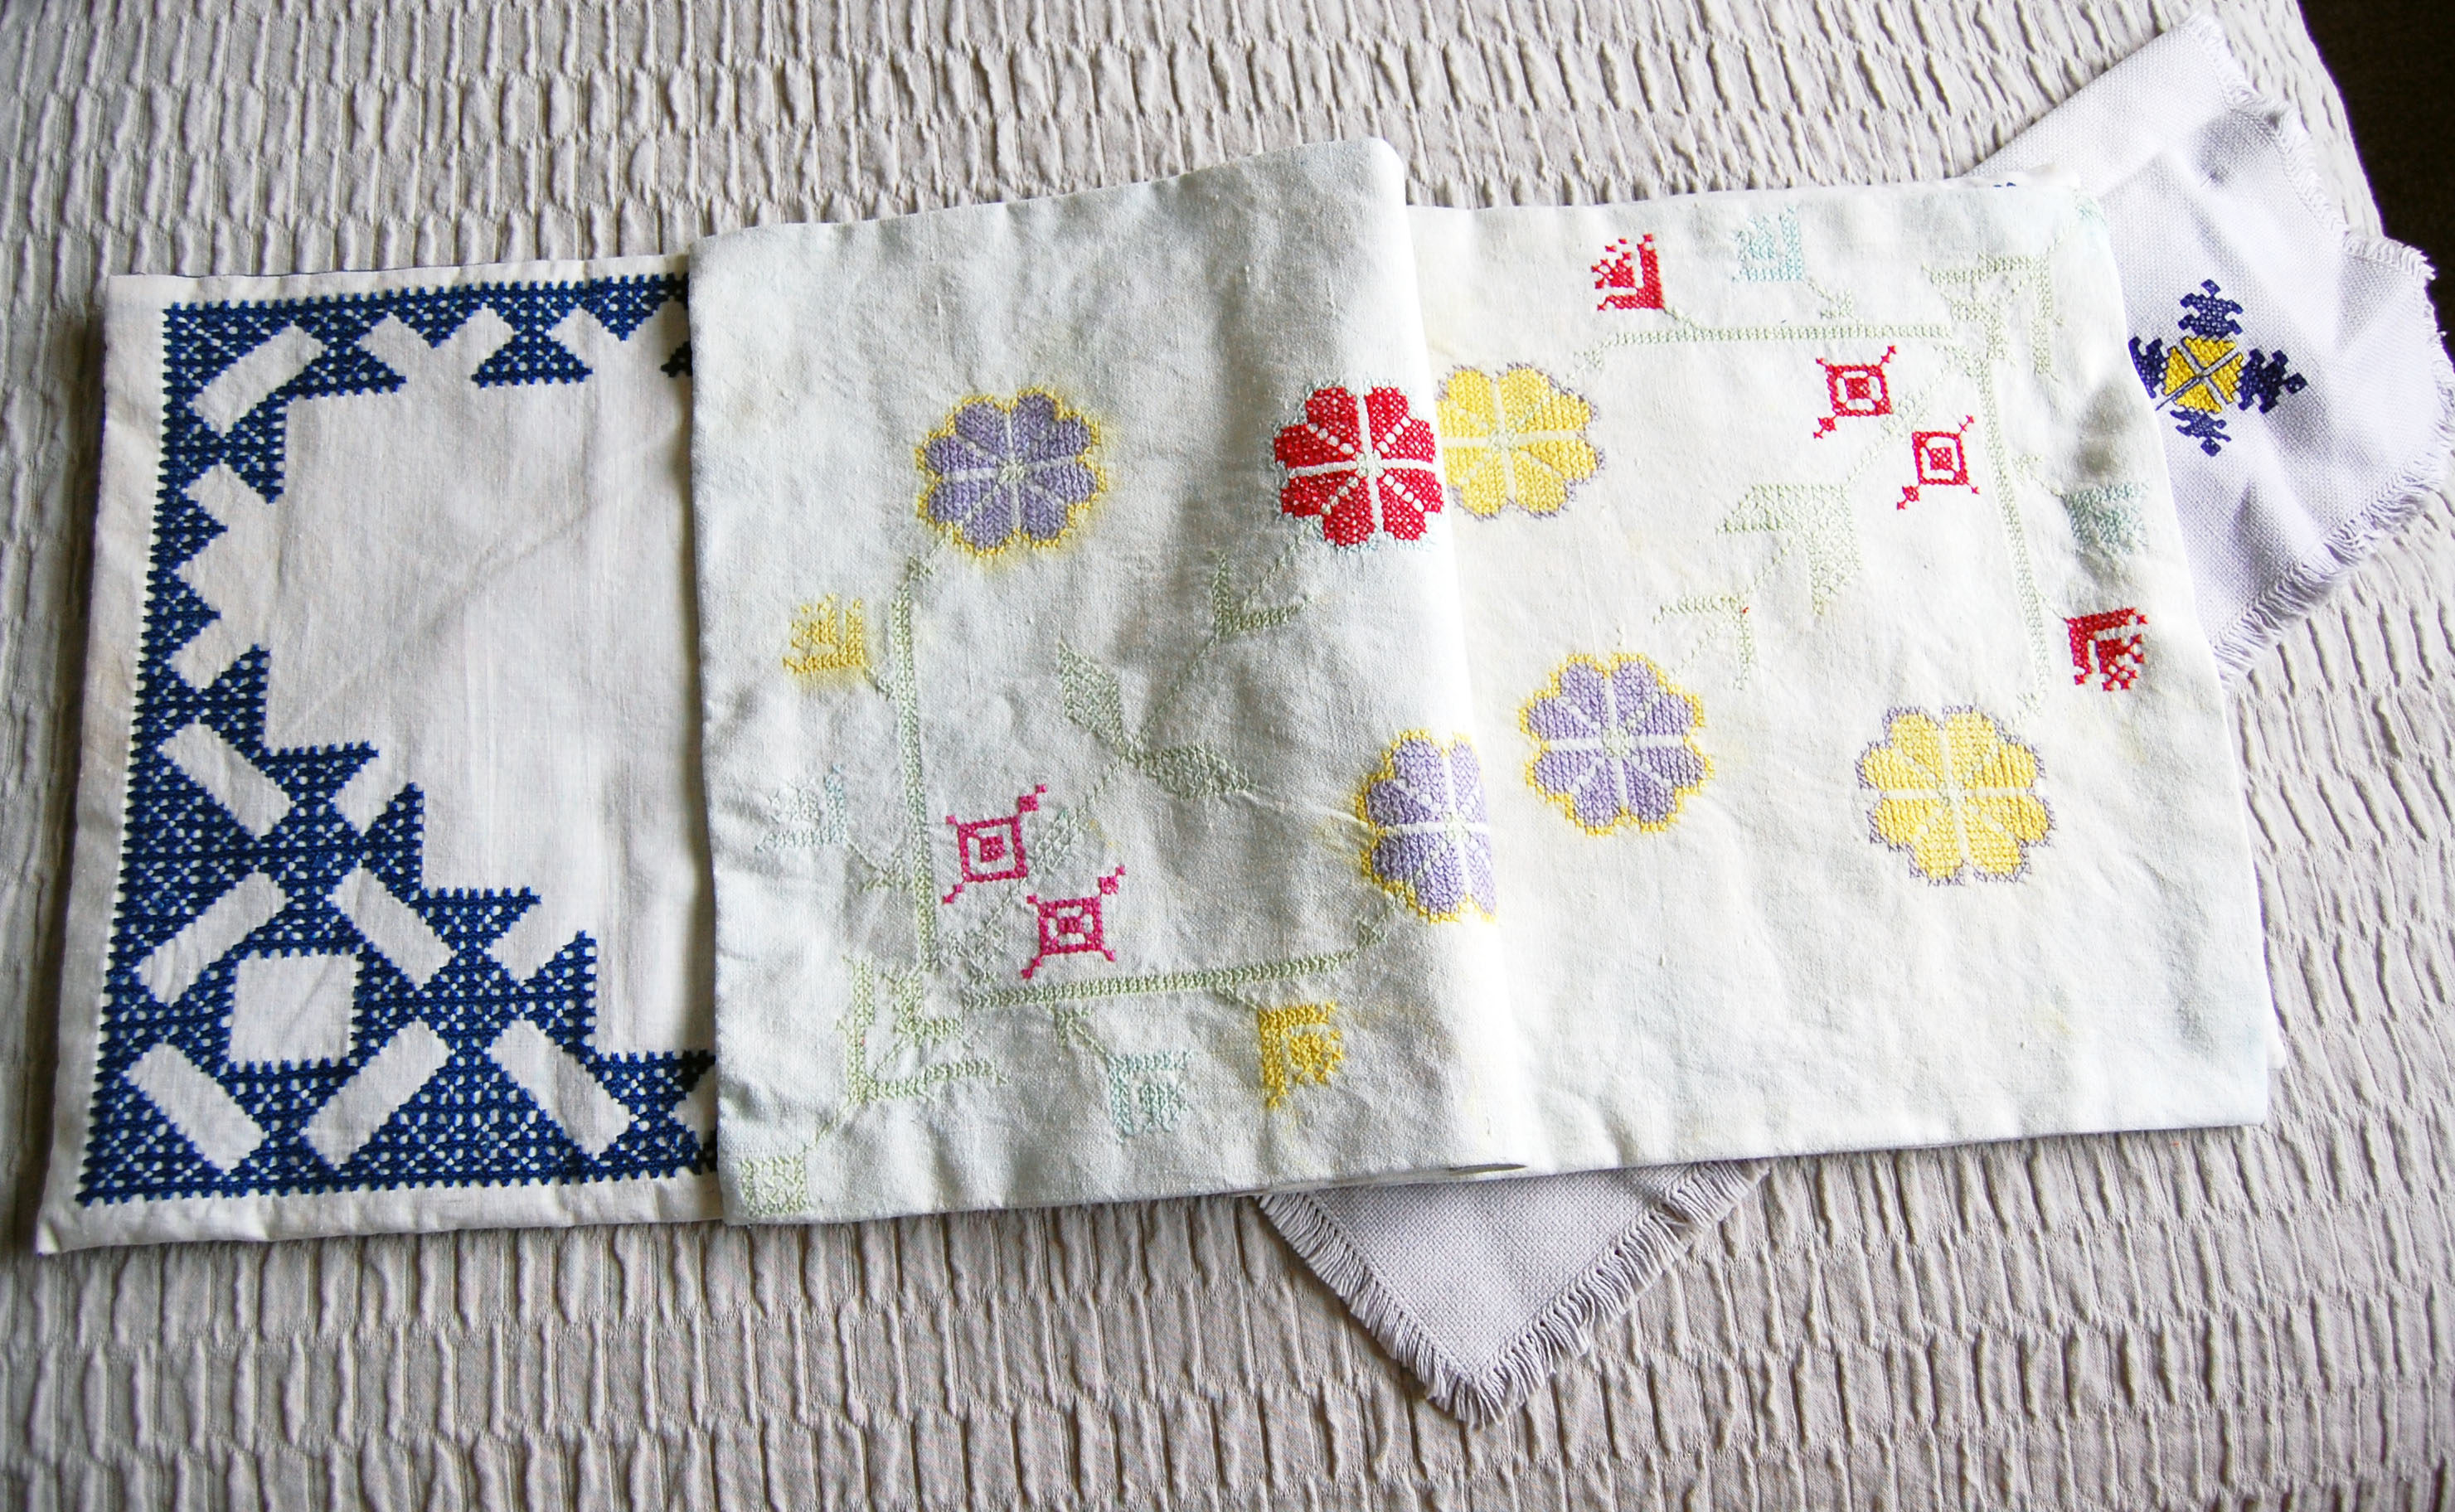 fabric book about embroidery skills